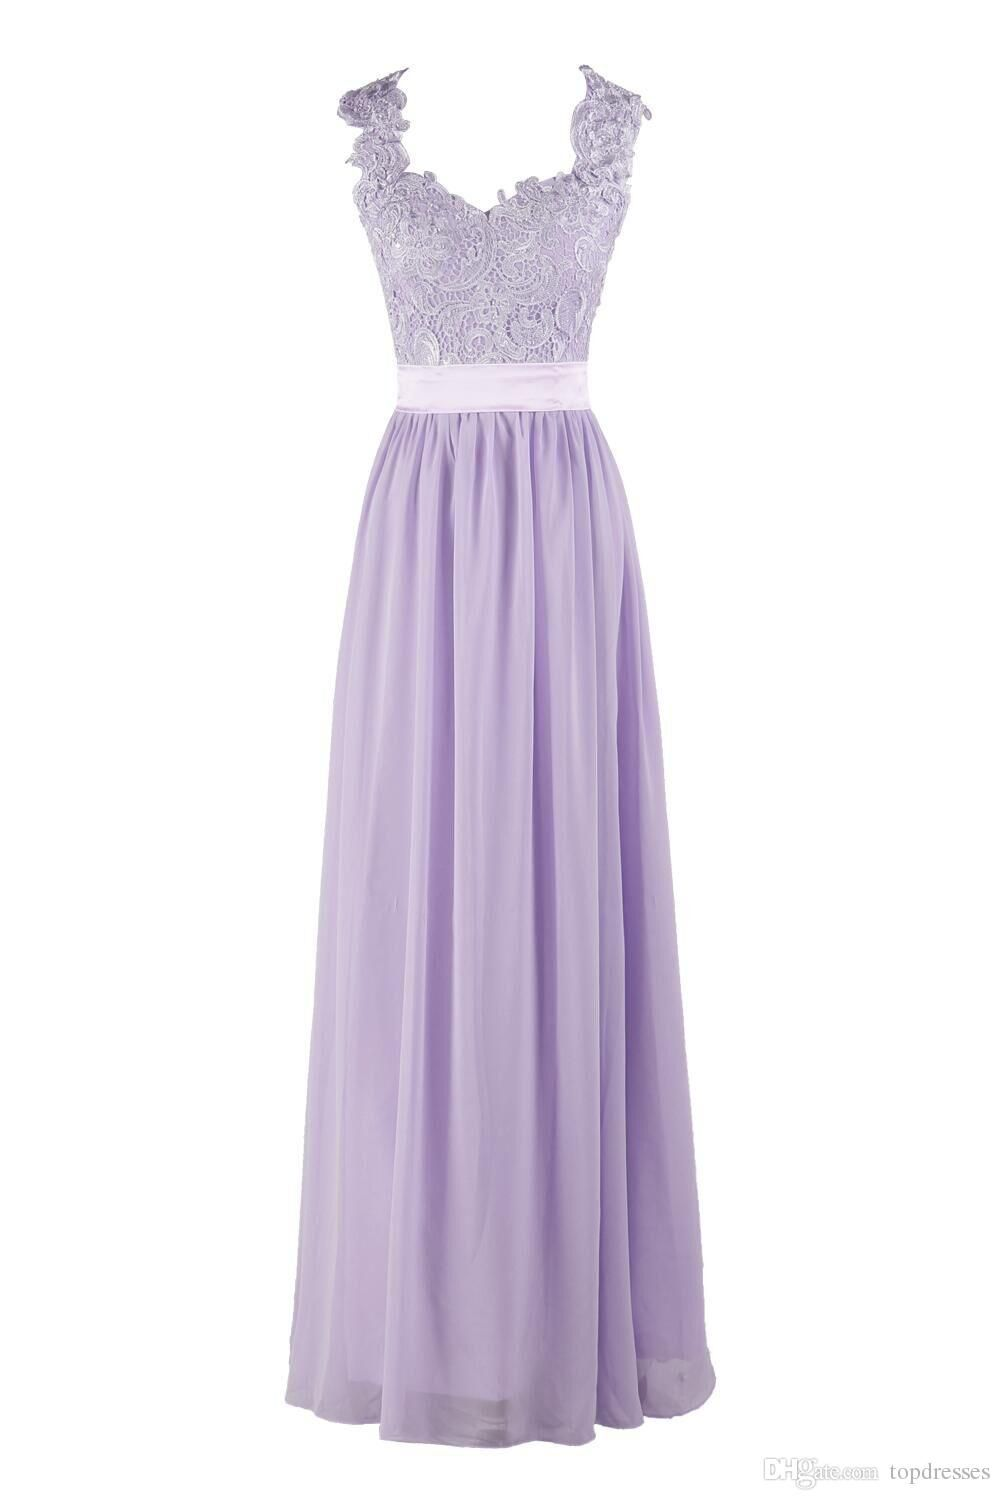 a0f5420f8535 Hot Selling Purple Lilac Lavender Bridesmaid Dresses Lace Chiffon Maid of Honor  Beach Wedding Party Dresses Plus SIZE Evening Dresses